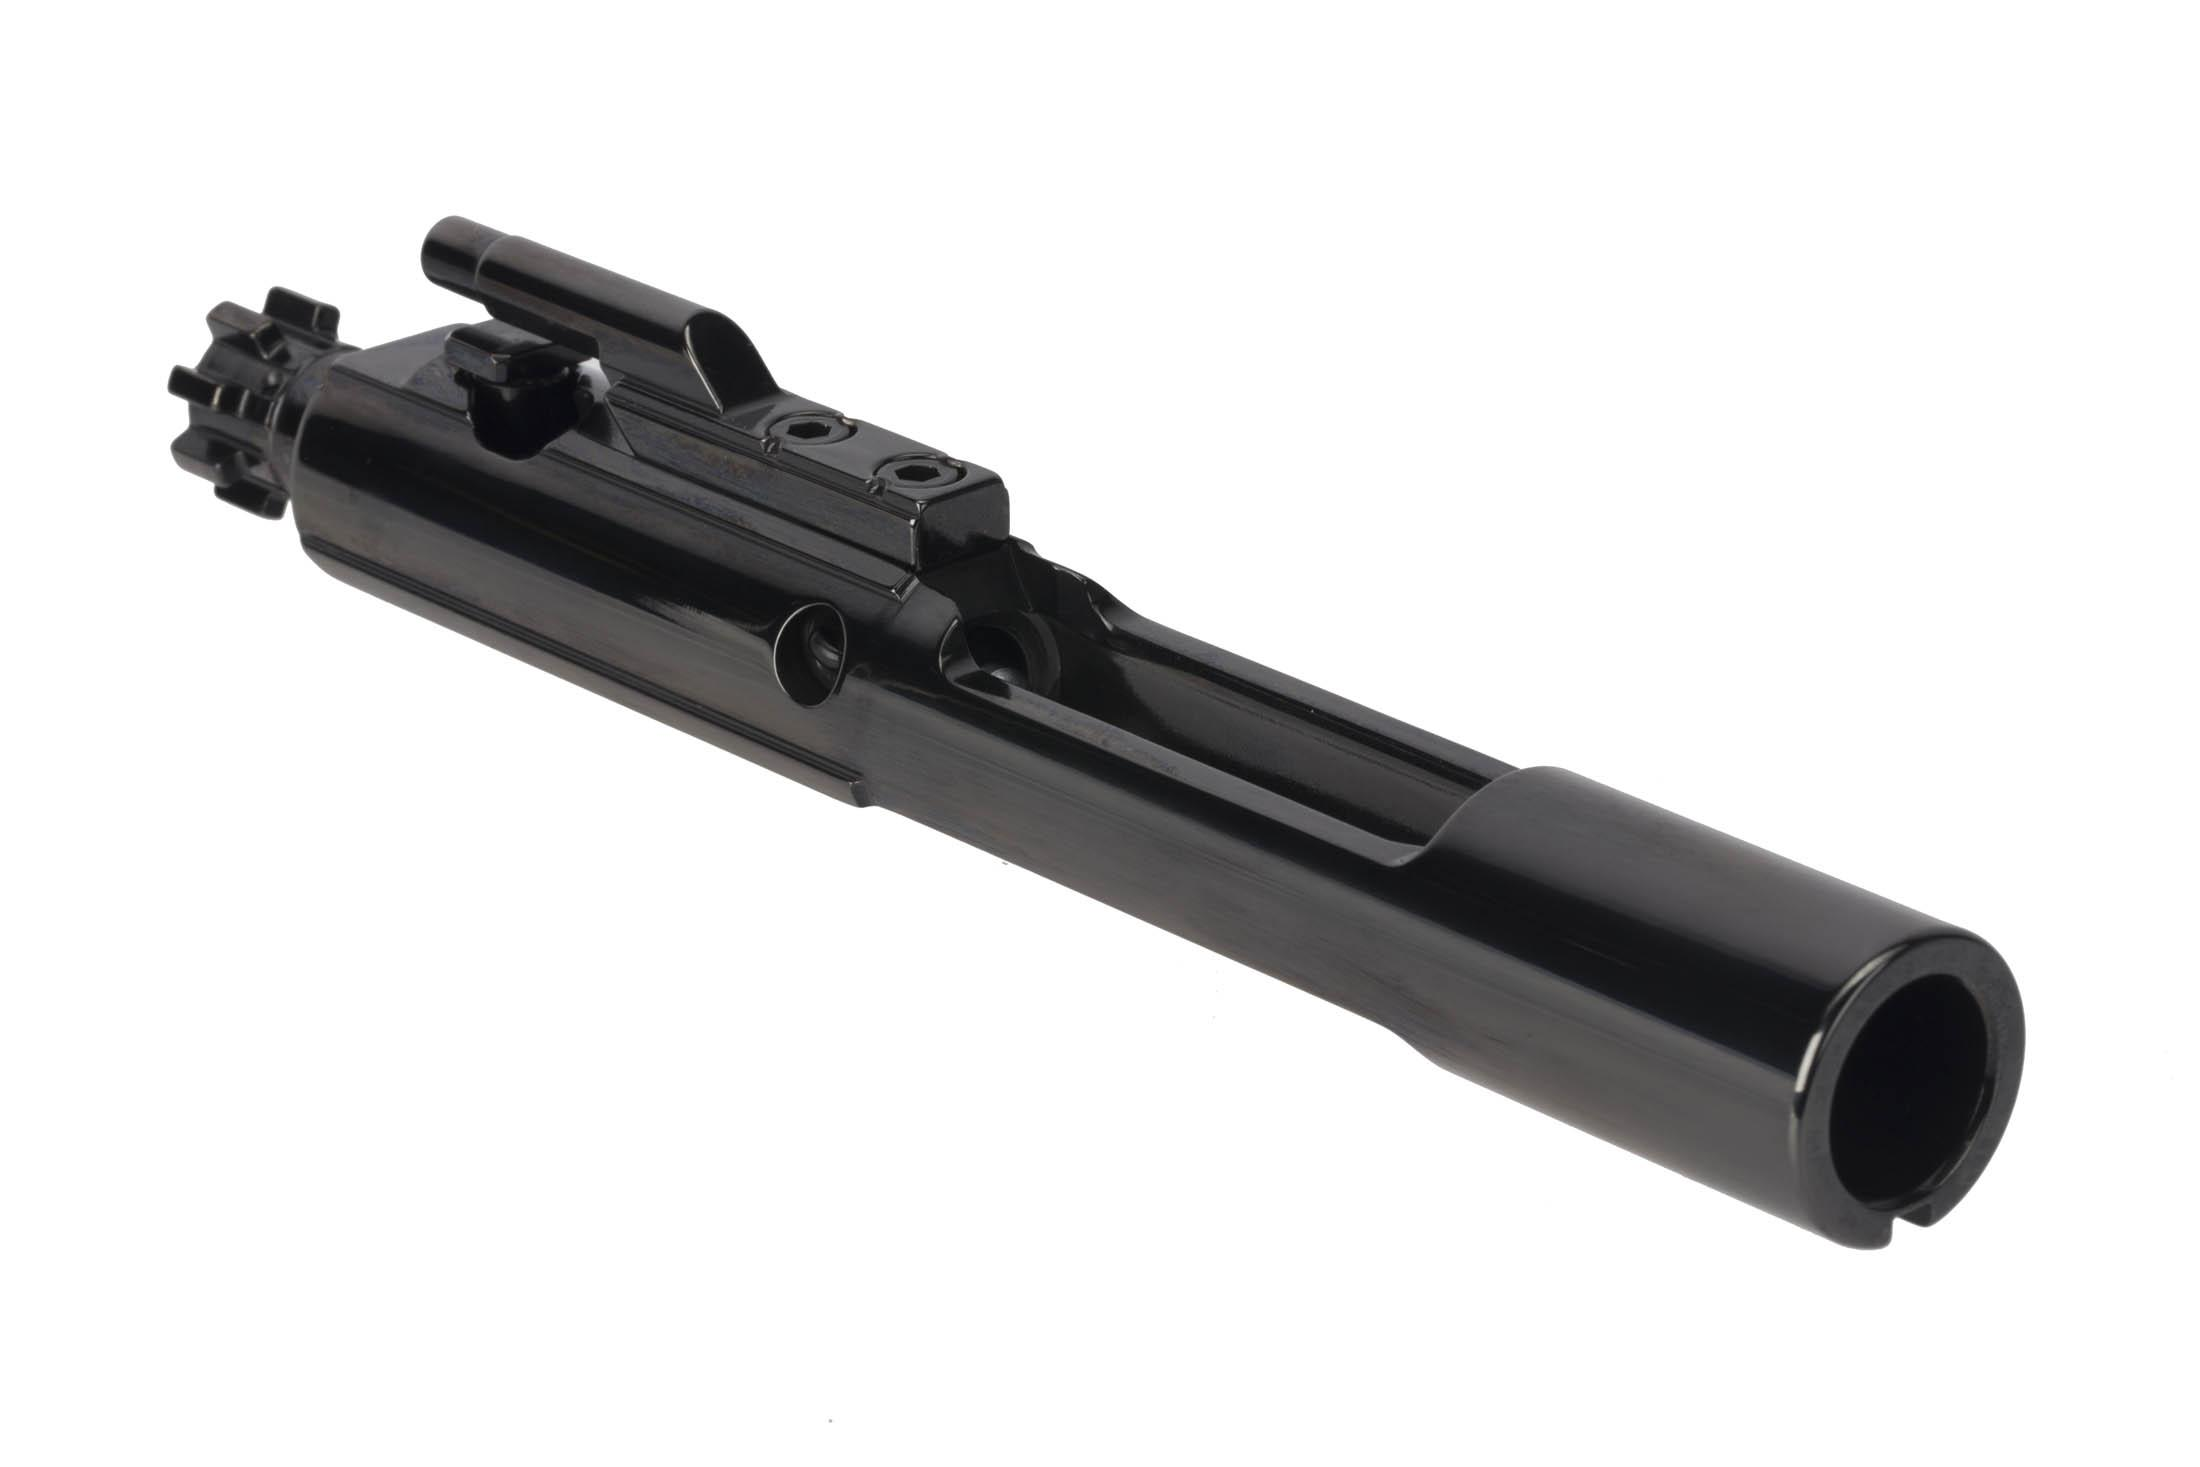 Cryptic Coatings AR-15 bolt carrier group for .458 SOCOM with Mystic Black finish features a full M16 profile tail